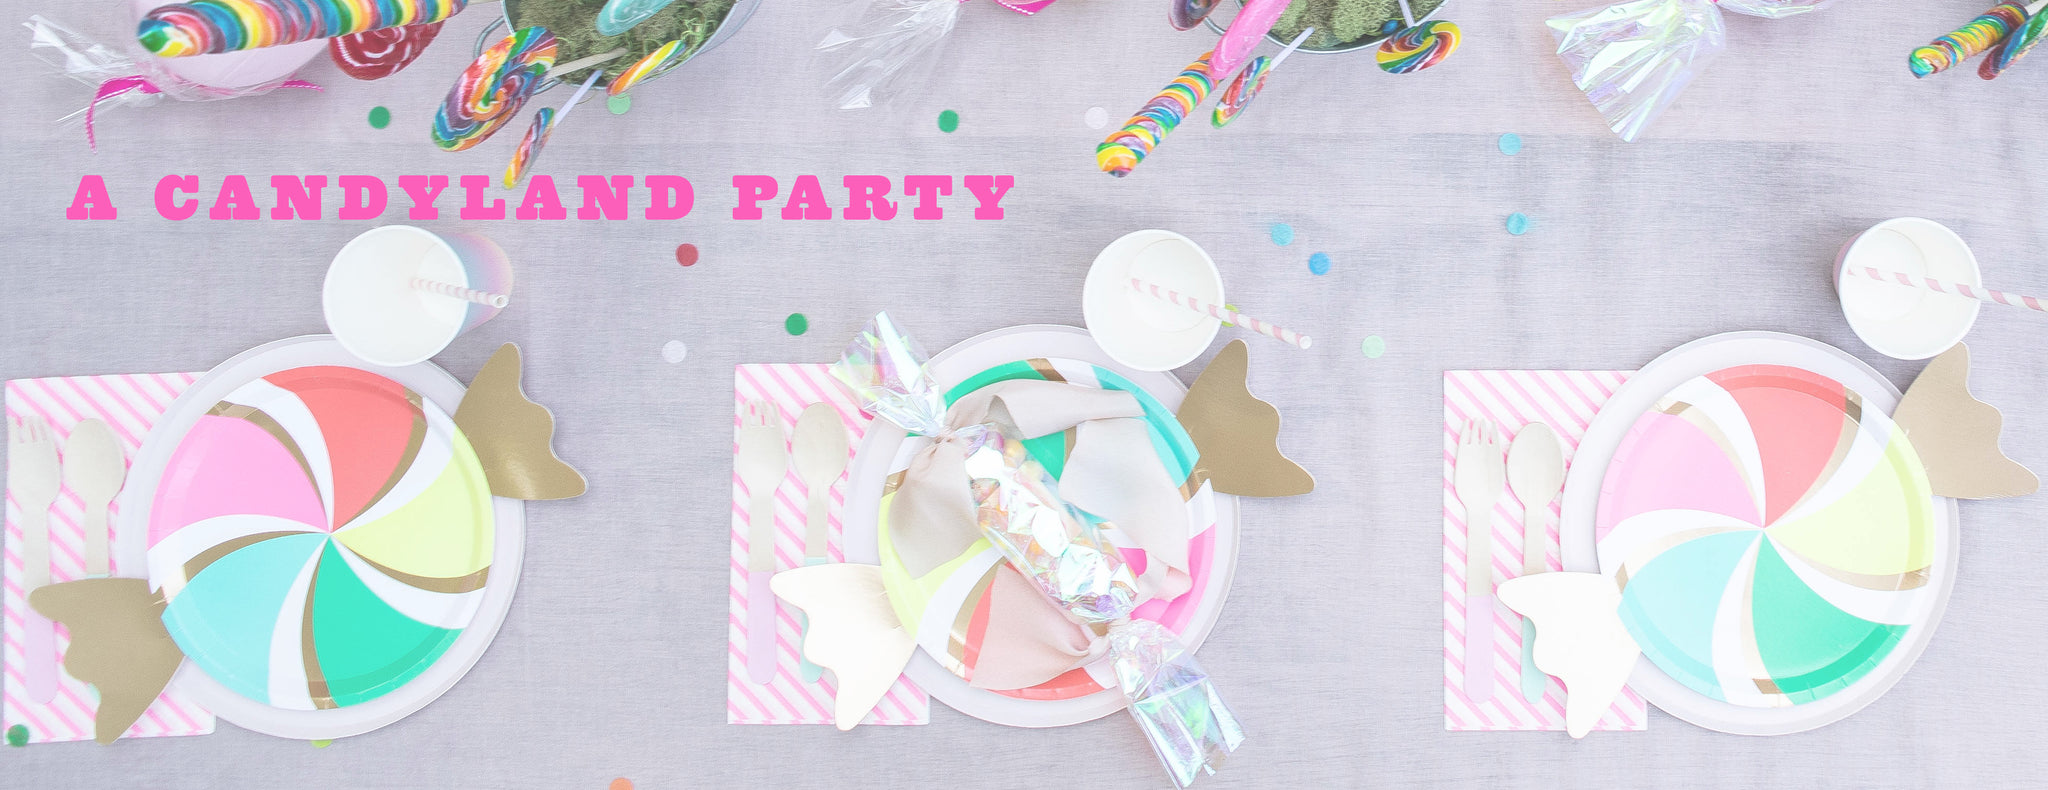 PARTY ET CIE EVENTS - A CANDYLAND PARTY